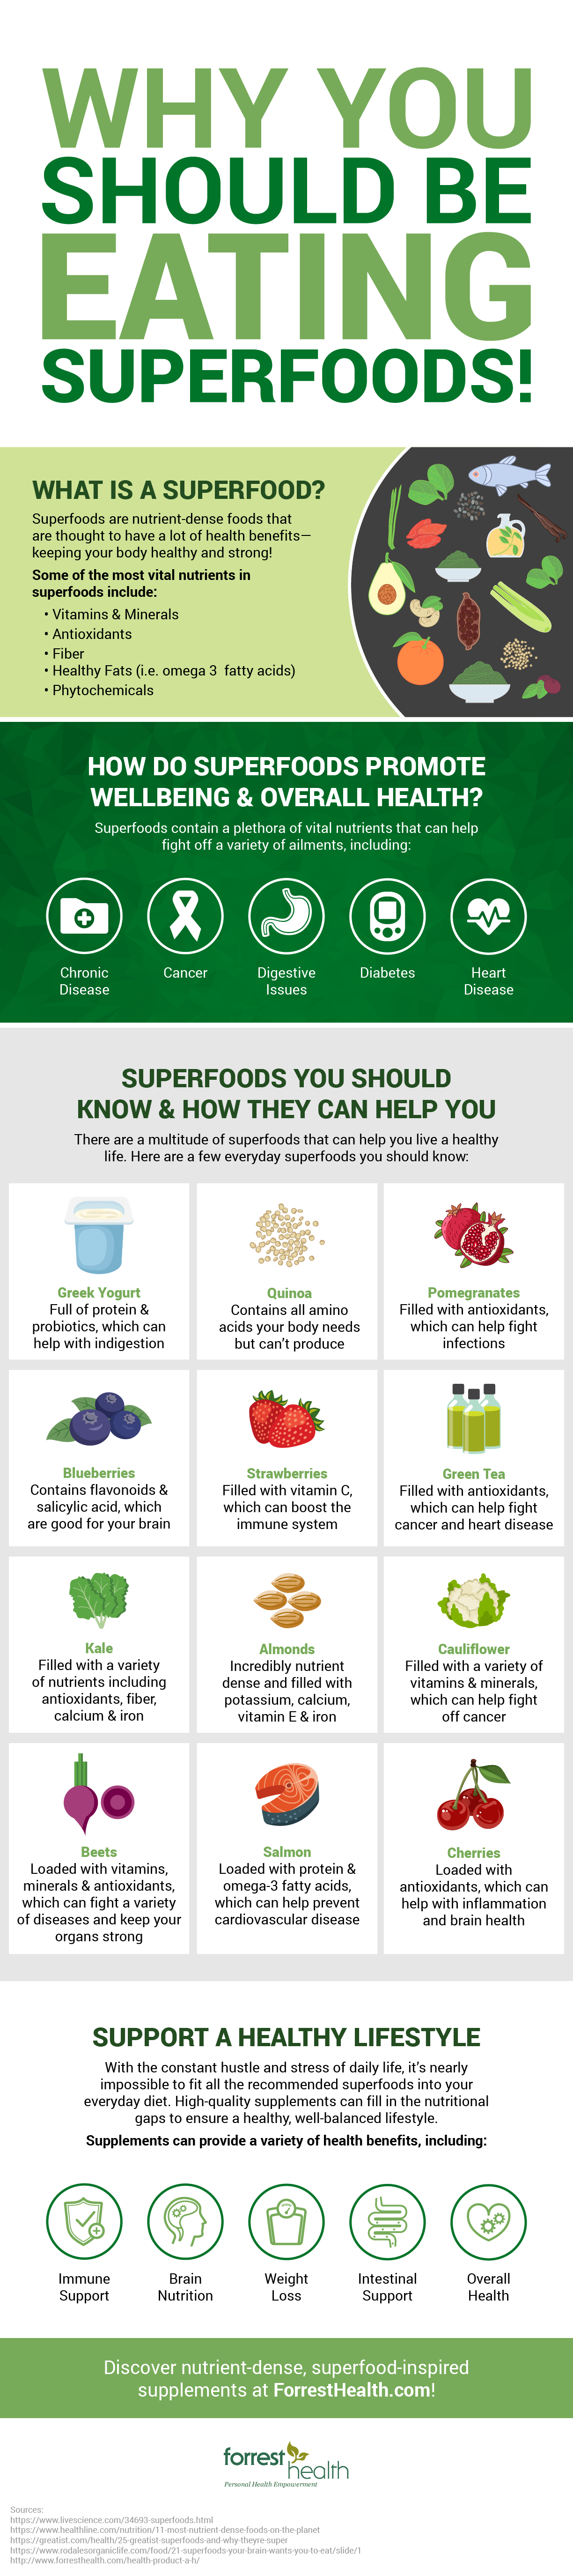 Superfood Infographic